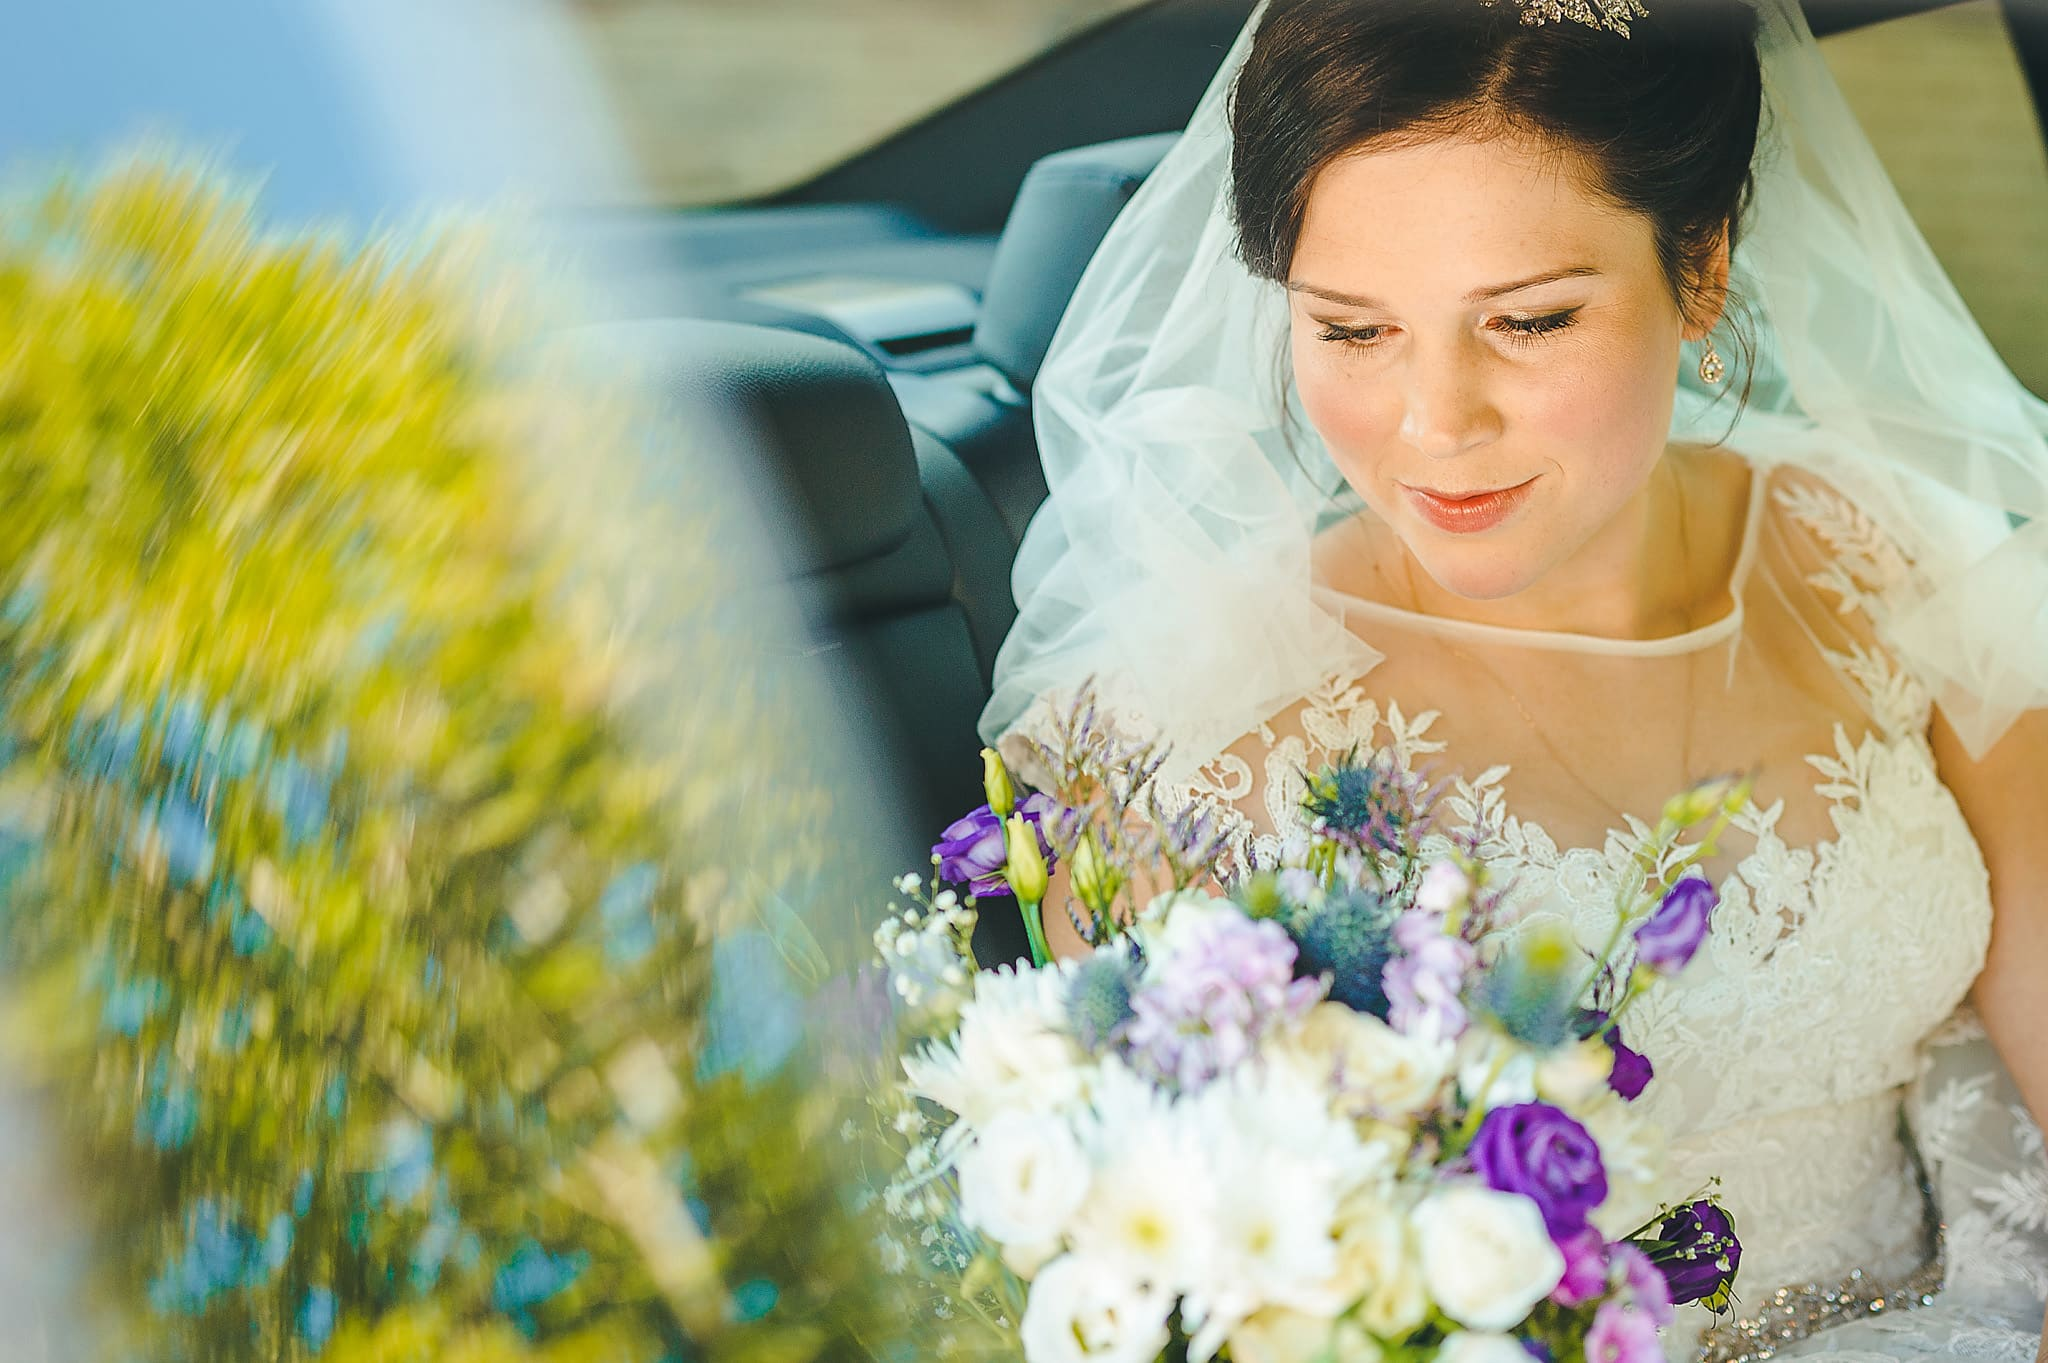 wedding photography midlands 13 - Midlands wedding photography - 2015 Review